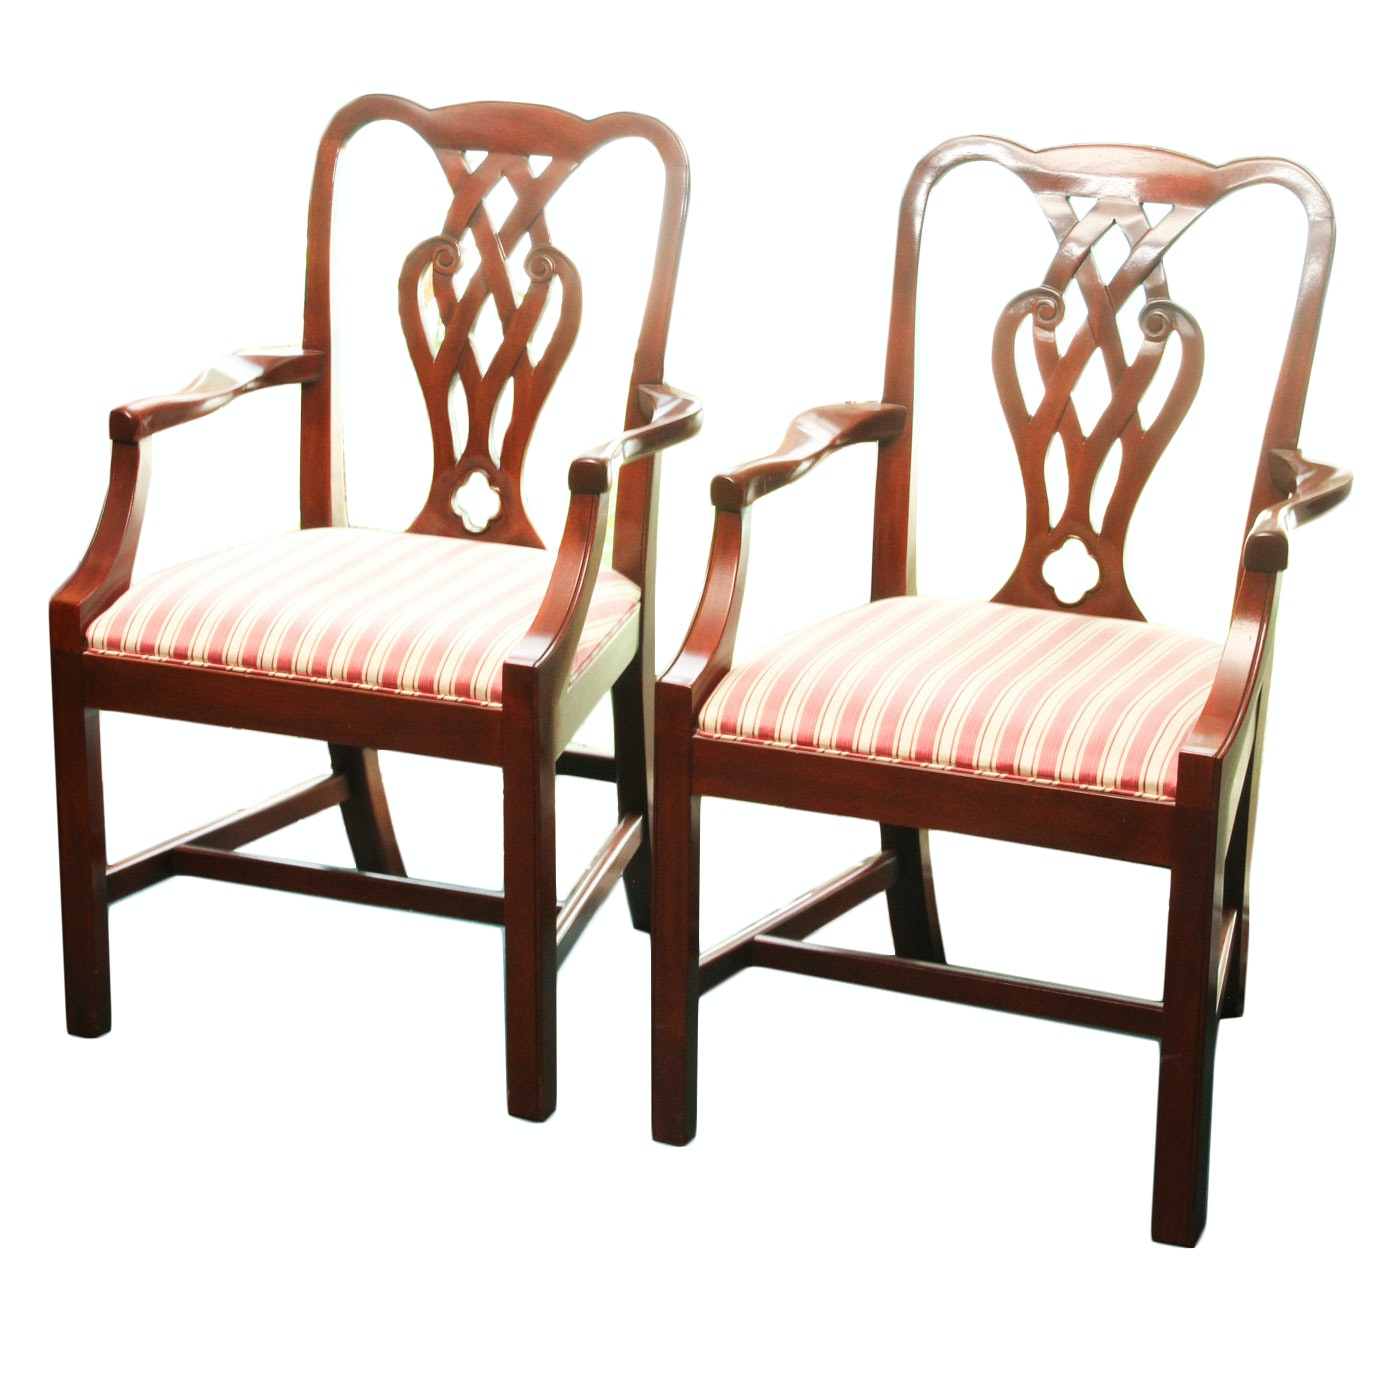 Chinese Chippendale Style Chair Pair by Baker Furniture